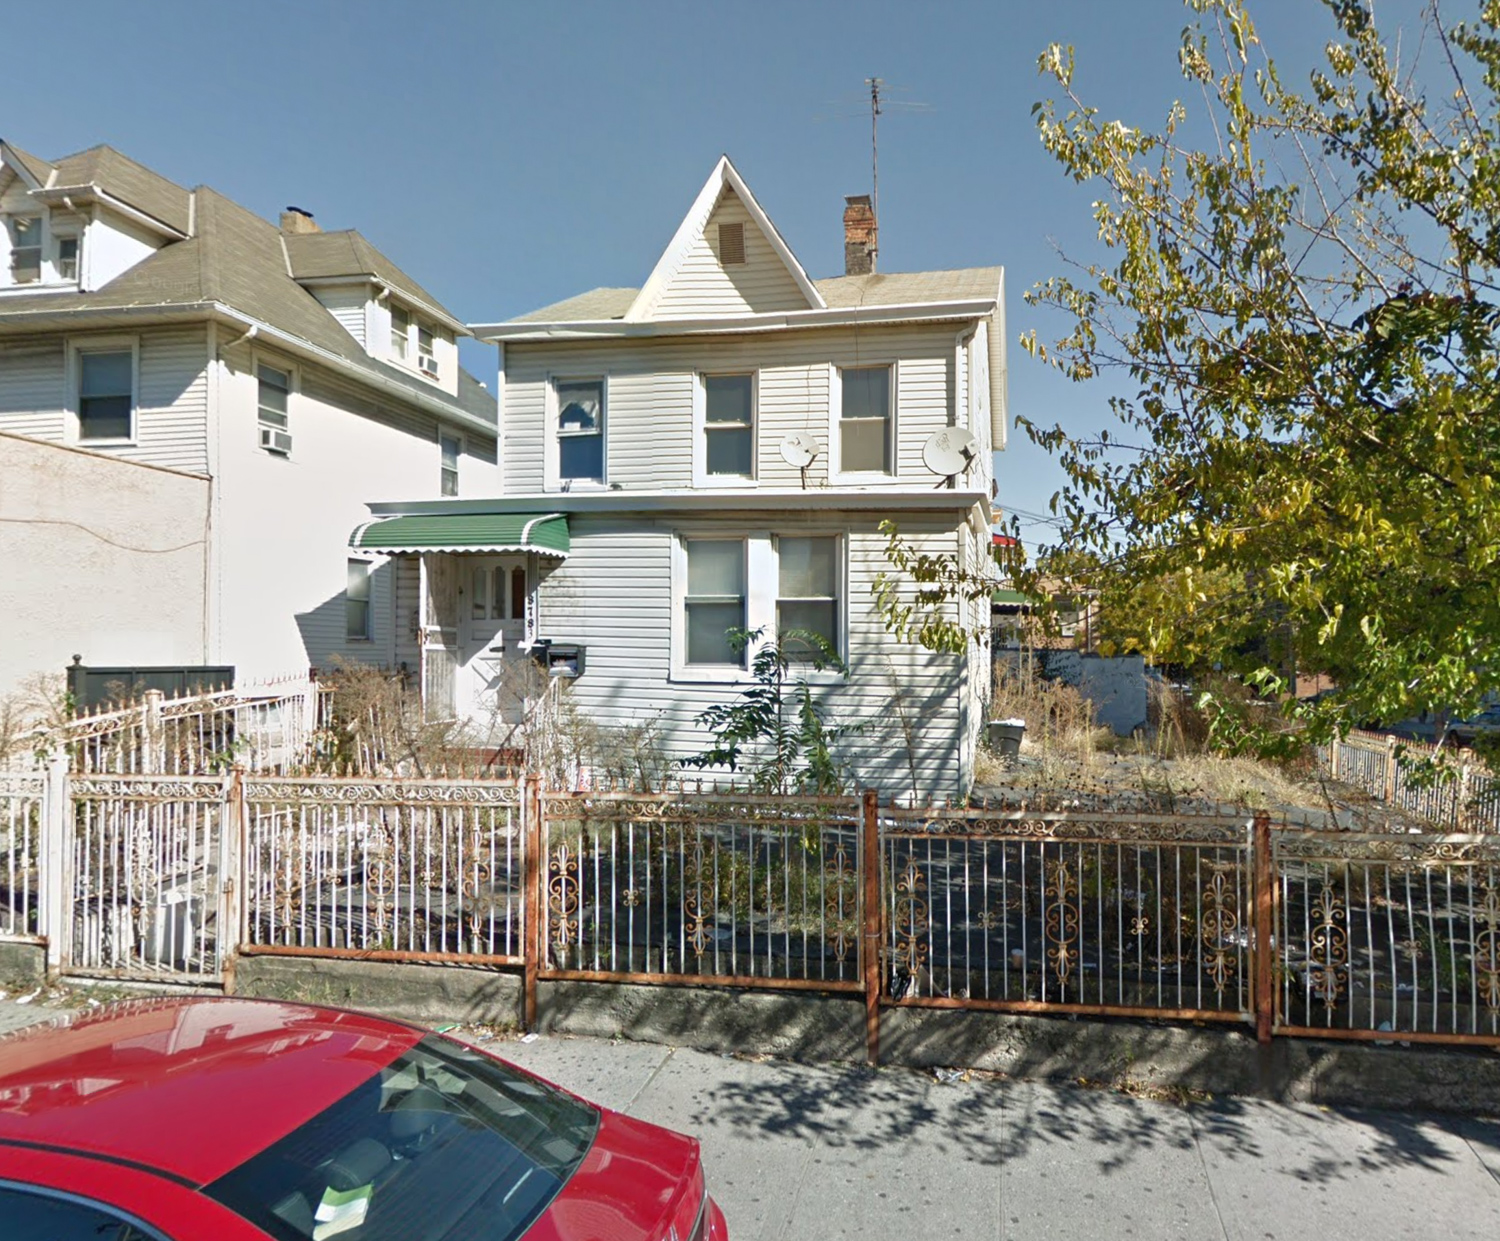 87-83 168th Street, via Google Maps